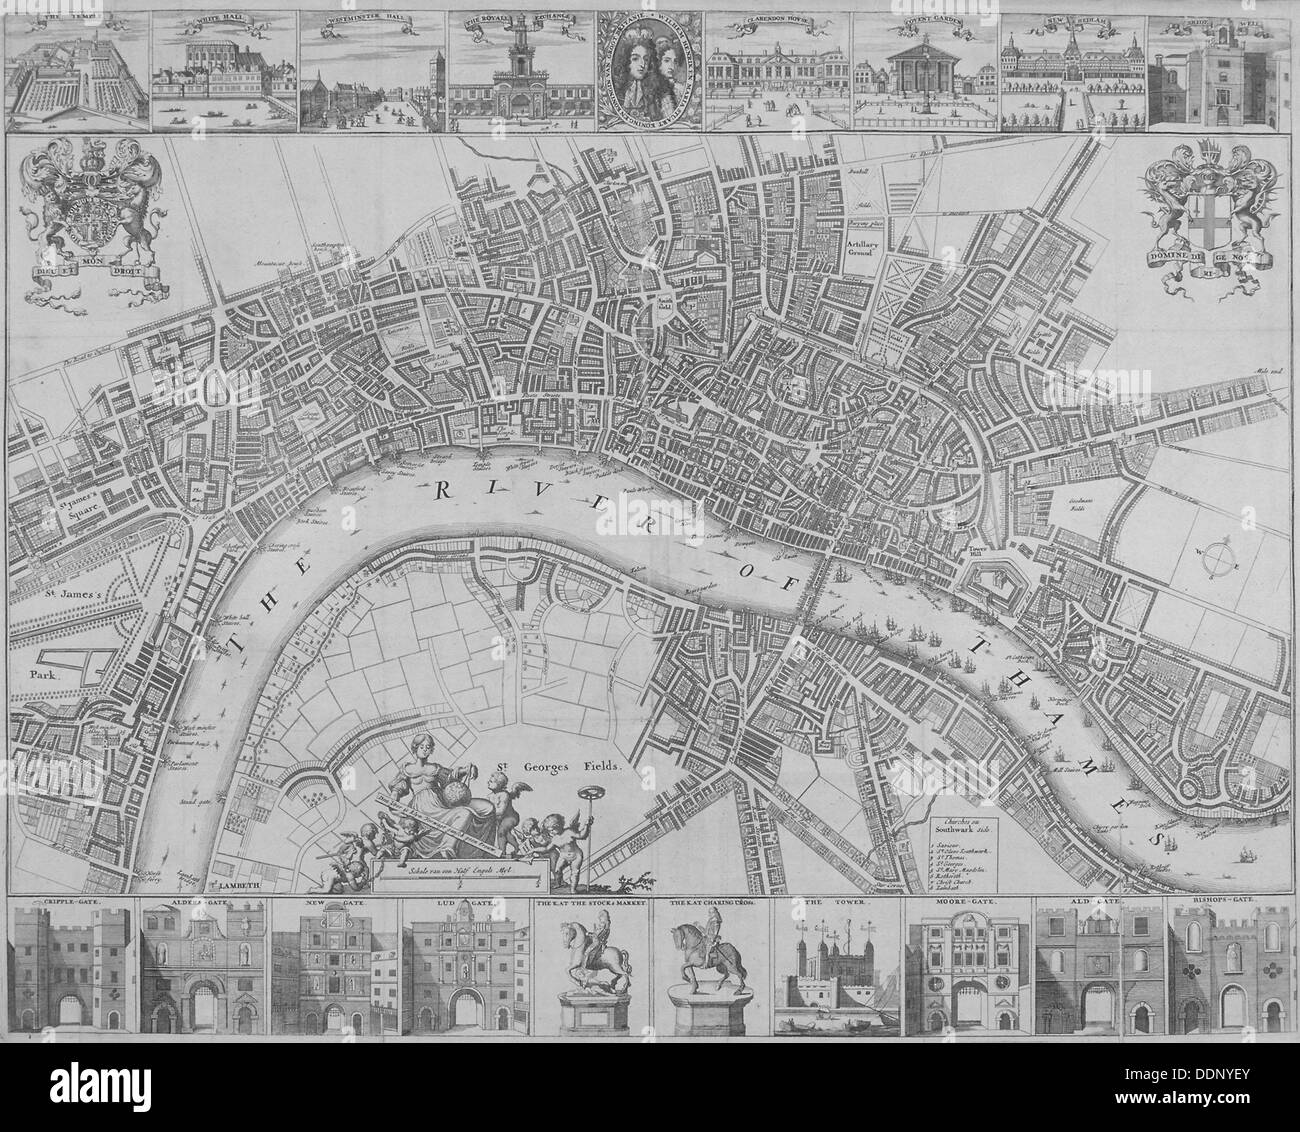 Map of the Cities of London and Westminster and Southwark, 1690. Artist: Anon - Stock Image